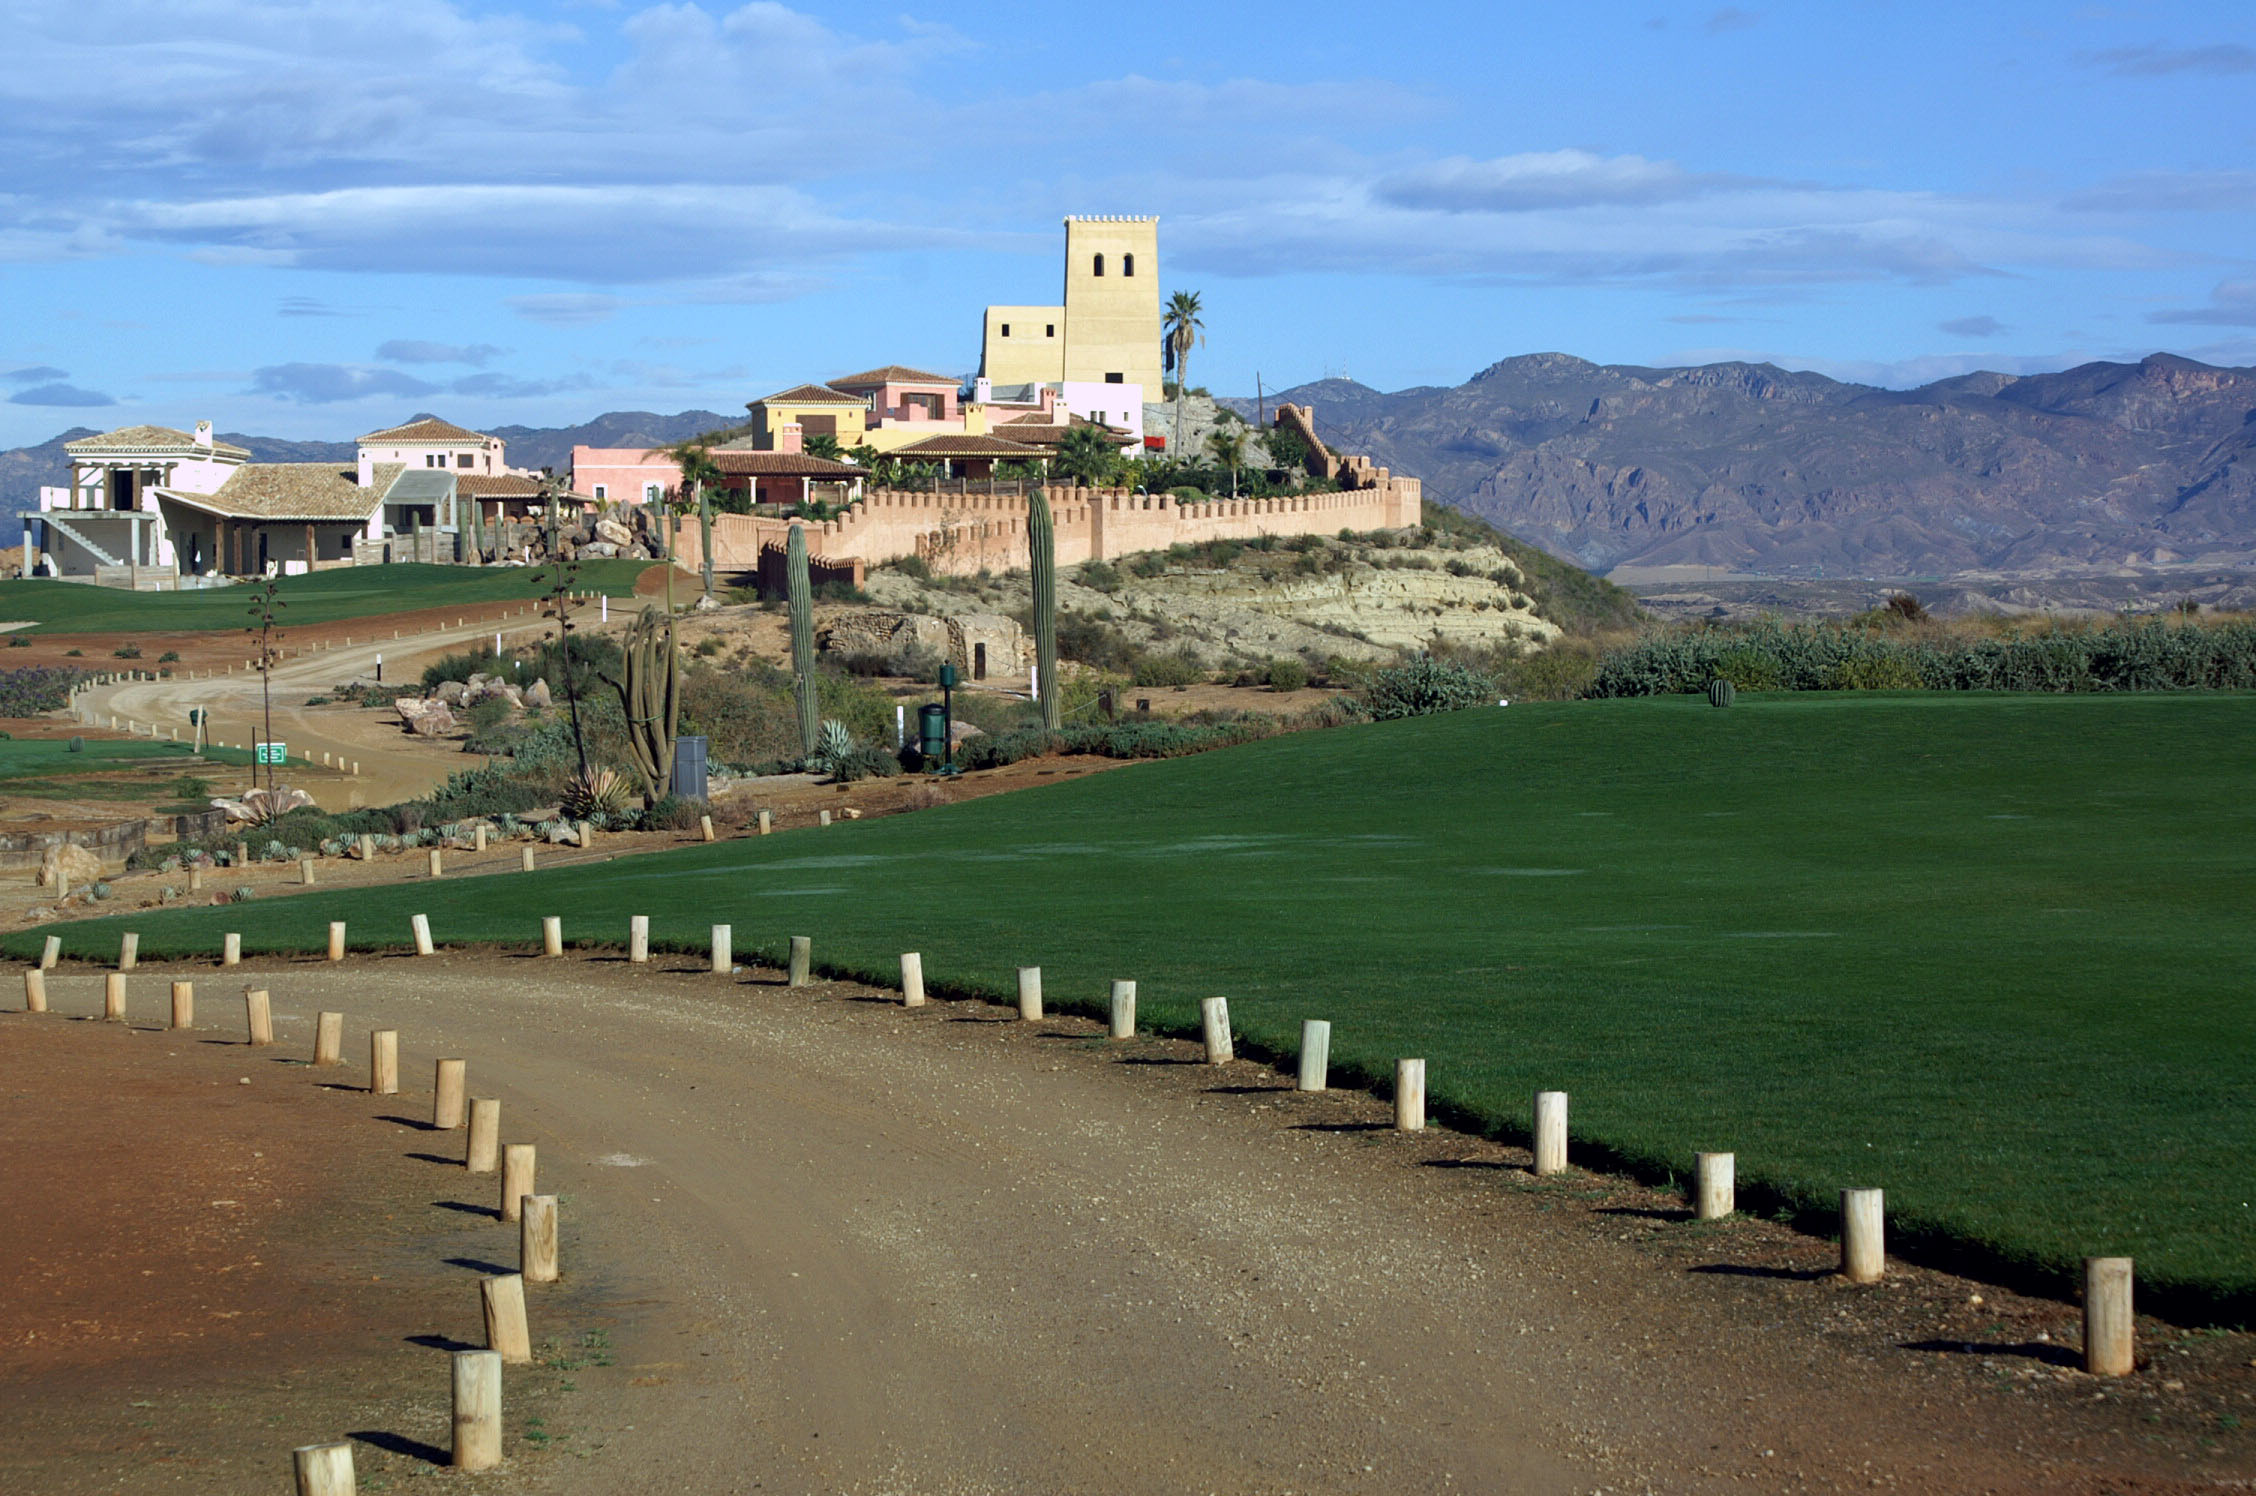 FileDesert Springs Golf Course Spain  panoramiojpg  Wikimedia